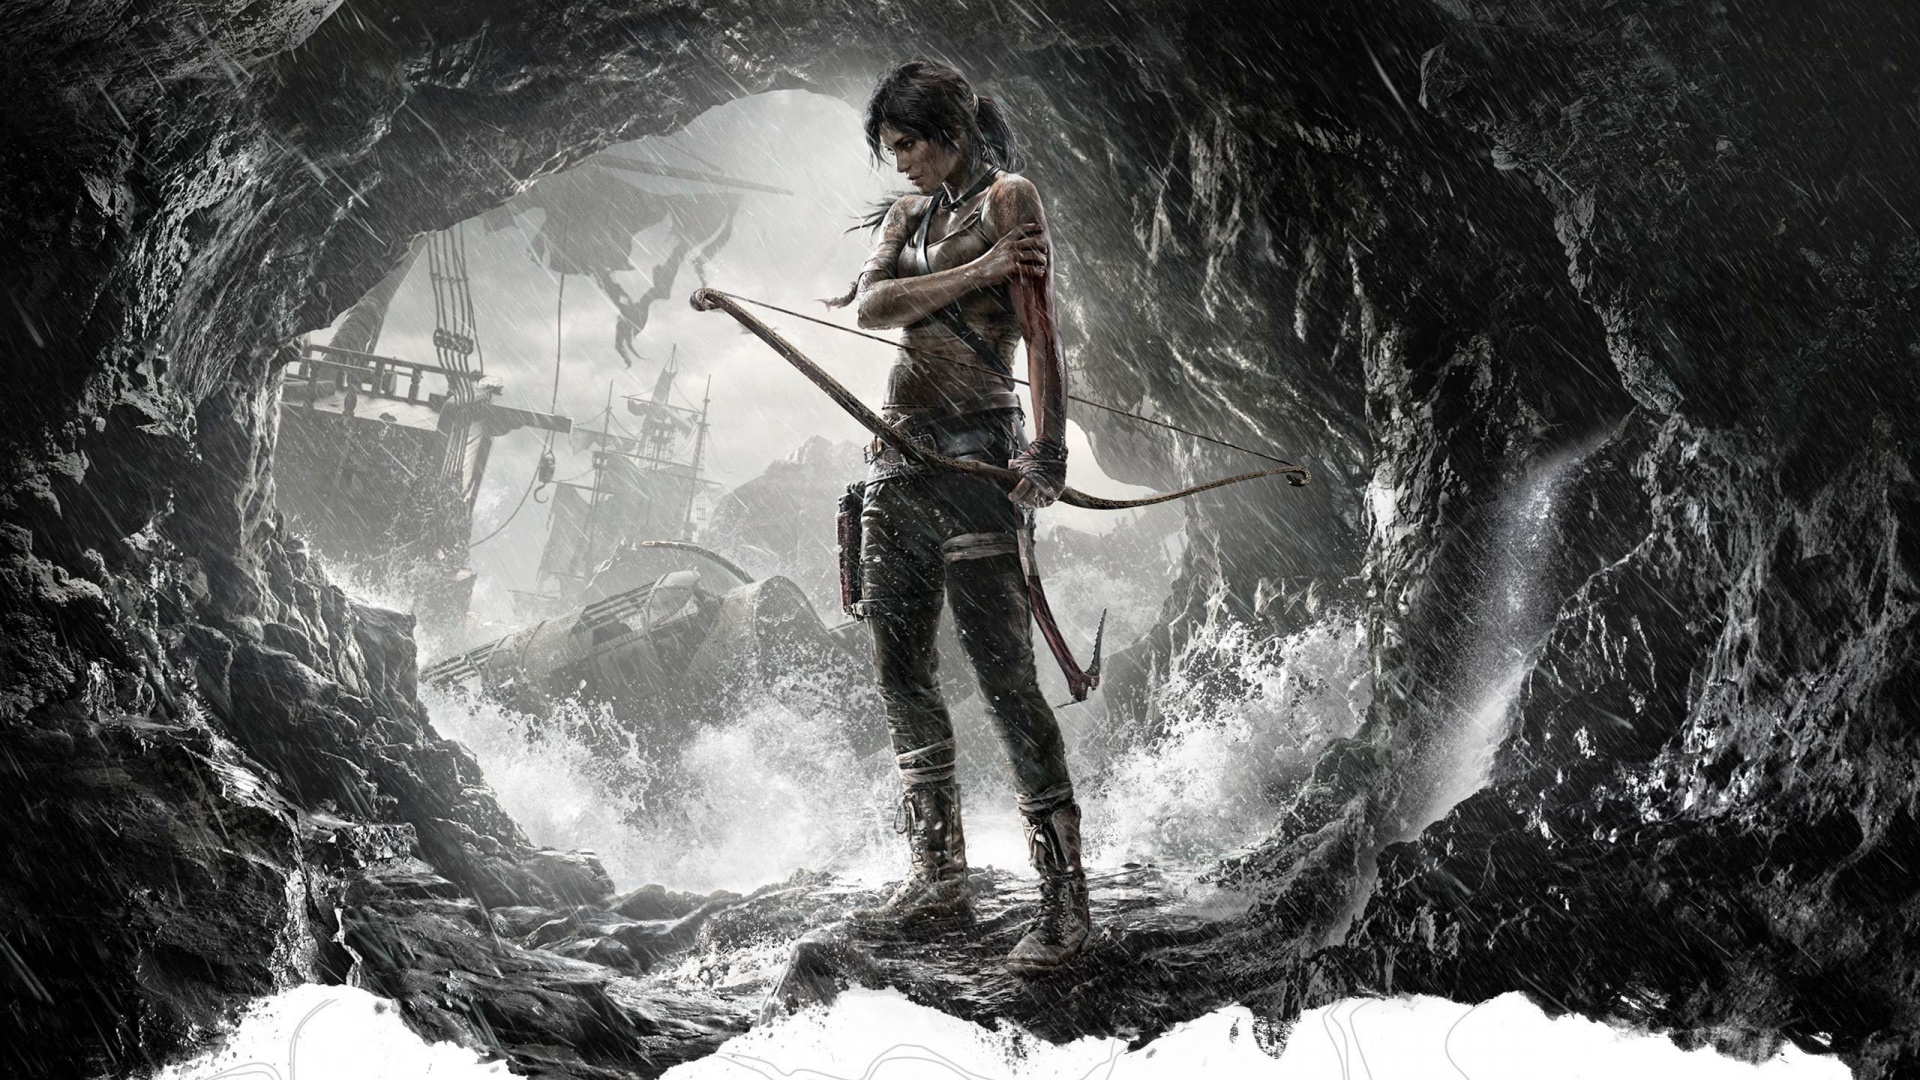 Tomb Raider 2013 Wallpaper: That VideoGame Blog